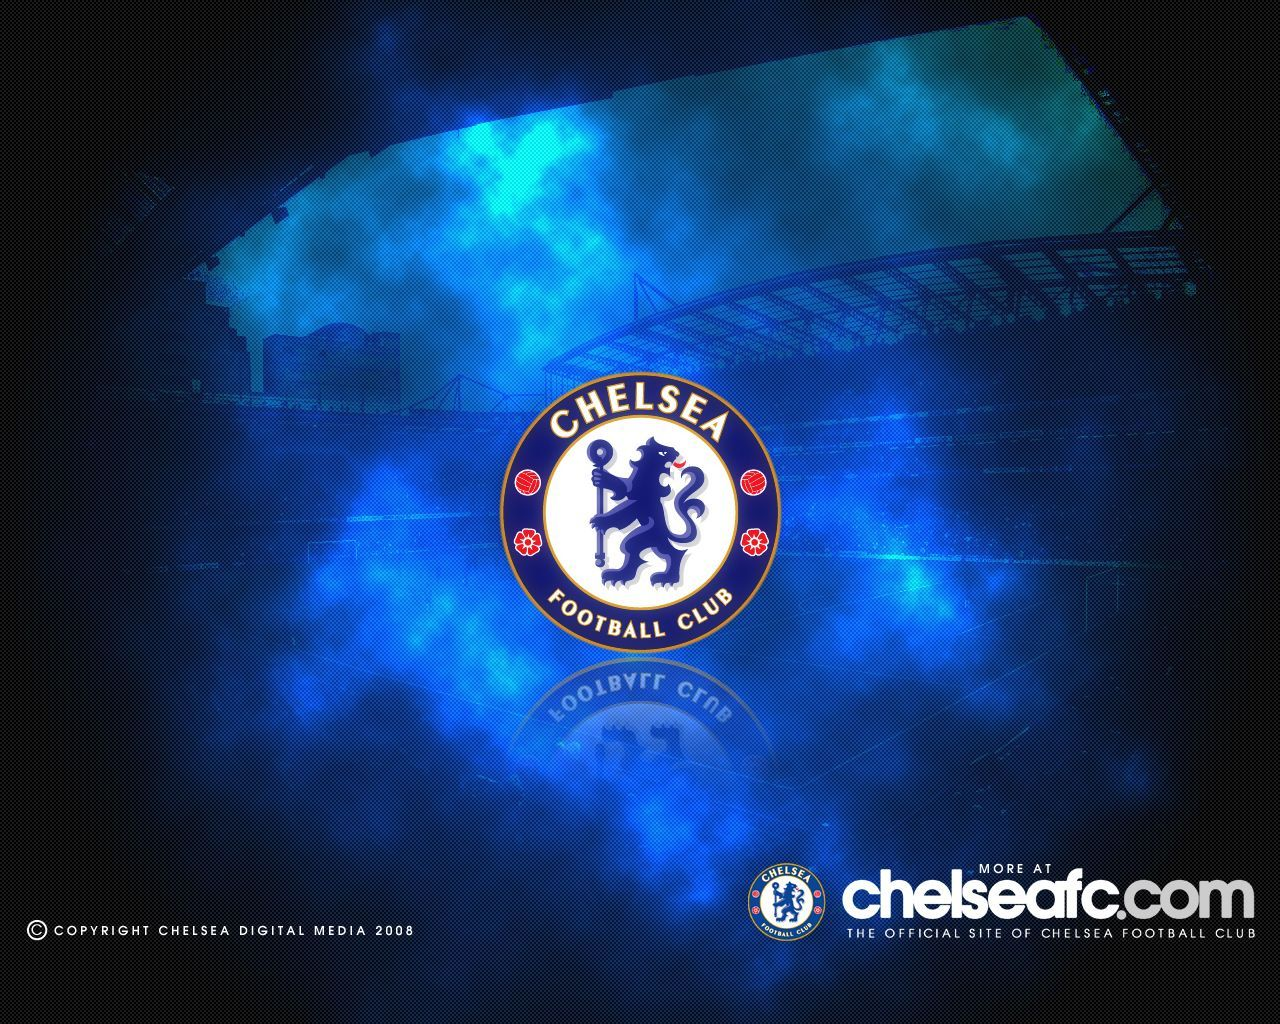 Hd chelsea fc logo wallpapers hd wallpapers pinterest hd chelsea fc logo wallpapers voltagebd Gallery